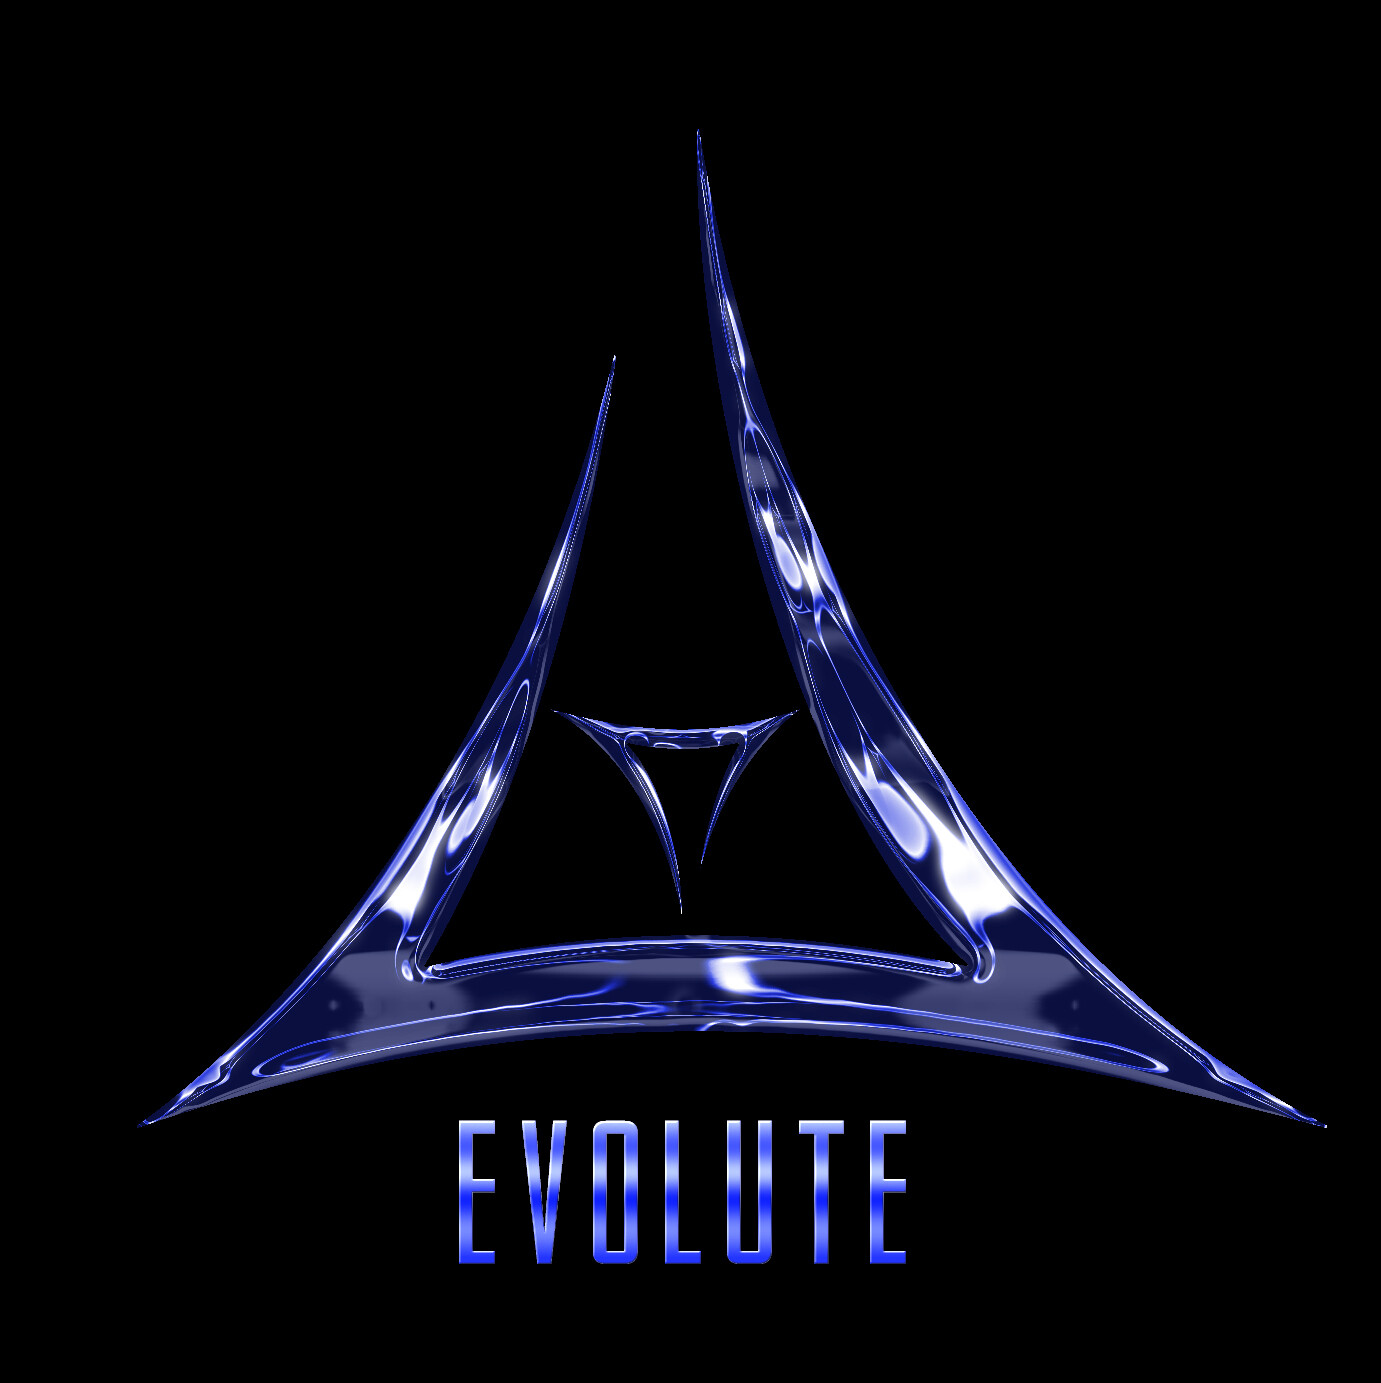 William furneaux evolute logo